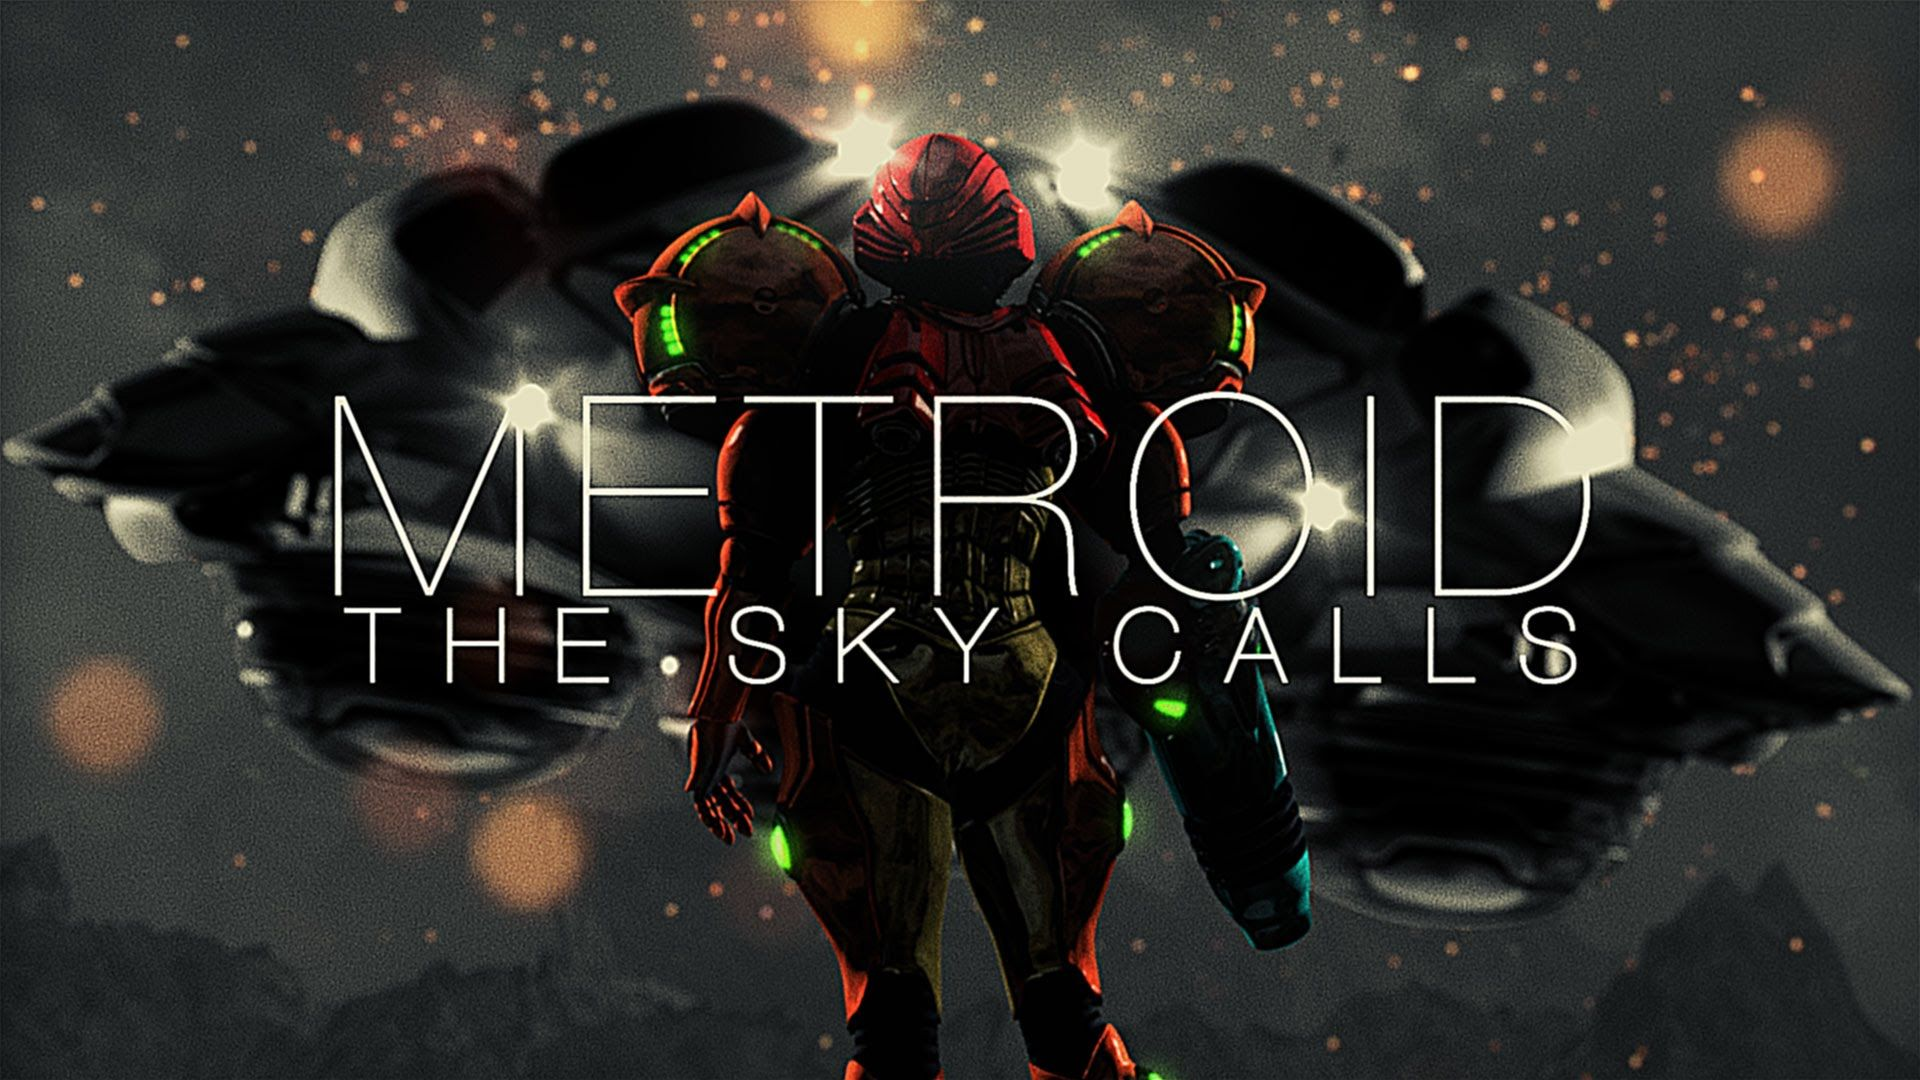 METROID: THE SKY CALLS // a Rainfall Films Intergalactic Odyssey >> Rainfall Films and director Sam Balcomb present a live action short set in the Metroid universe, starring Jessica Chobot (Nerdist) and America Young (Halo 5).ntergalactic Odyssey